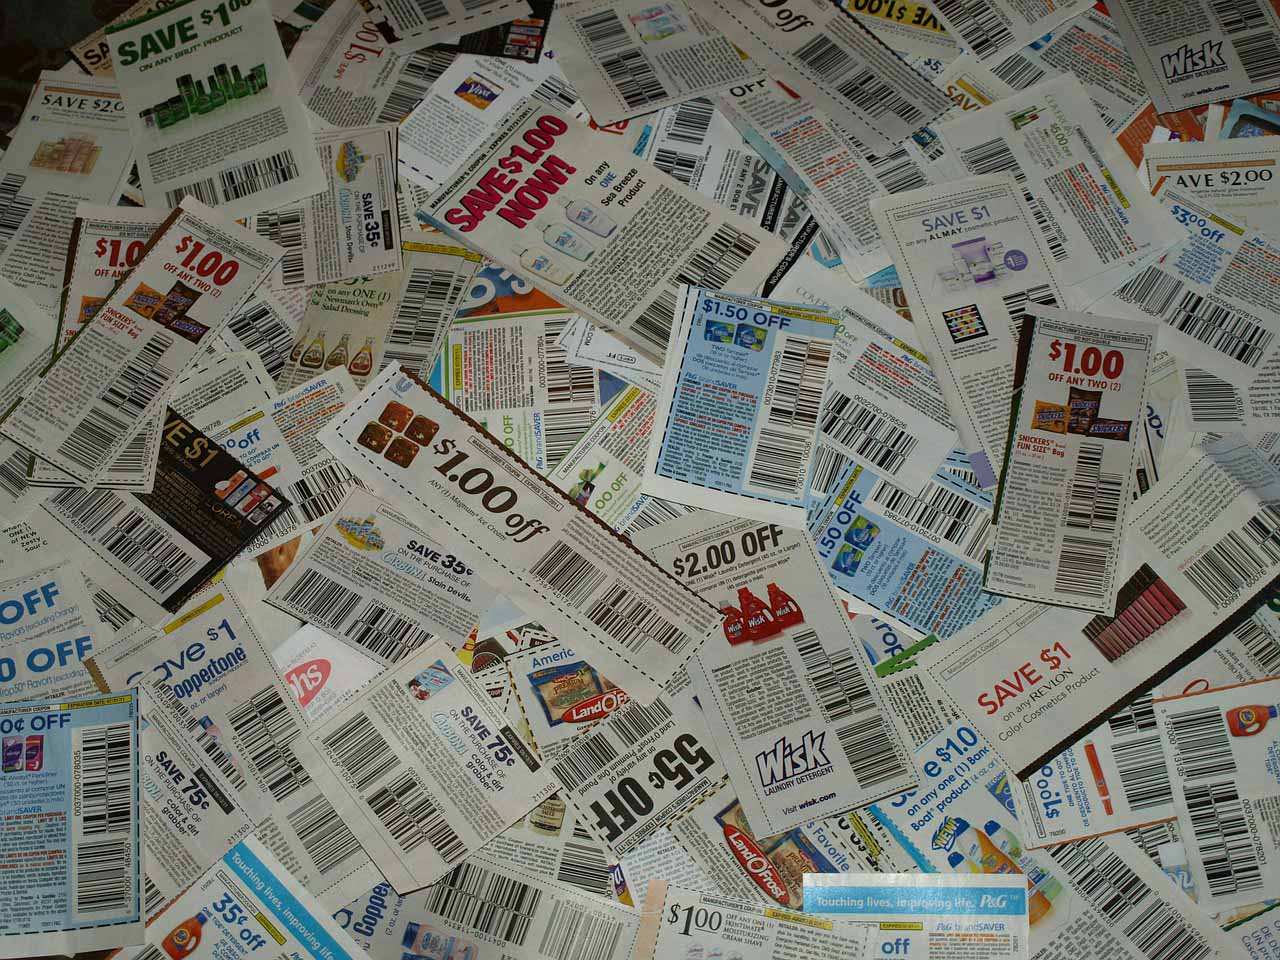 8 REASONS SUCCESSFUL COMPANIES OFFER COUPONS.jpg